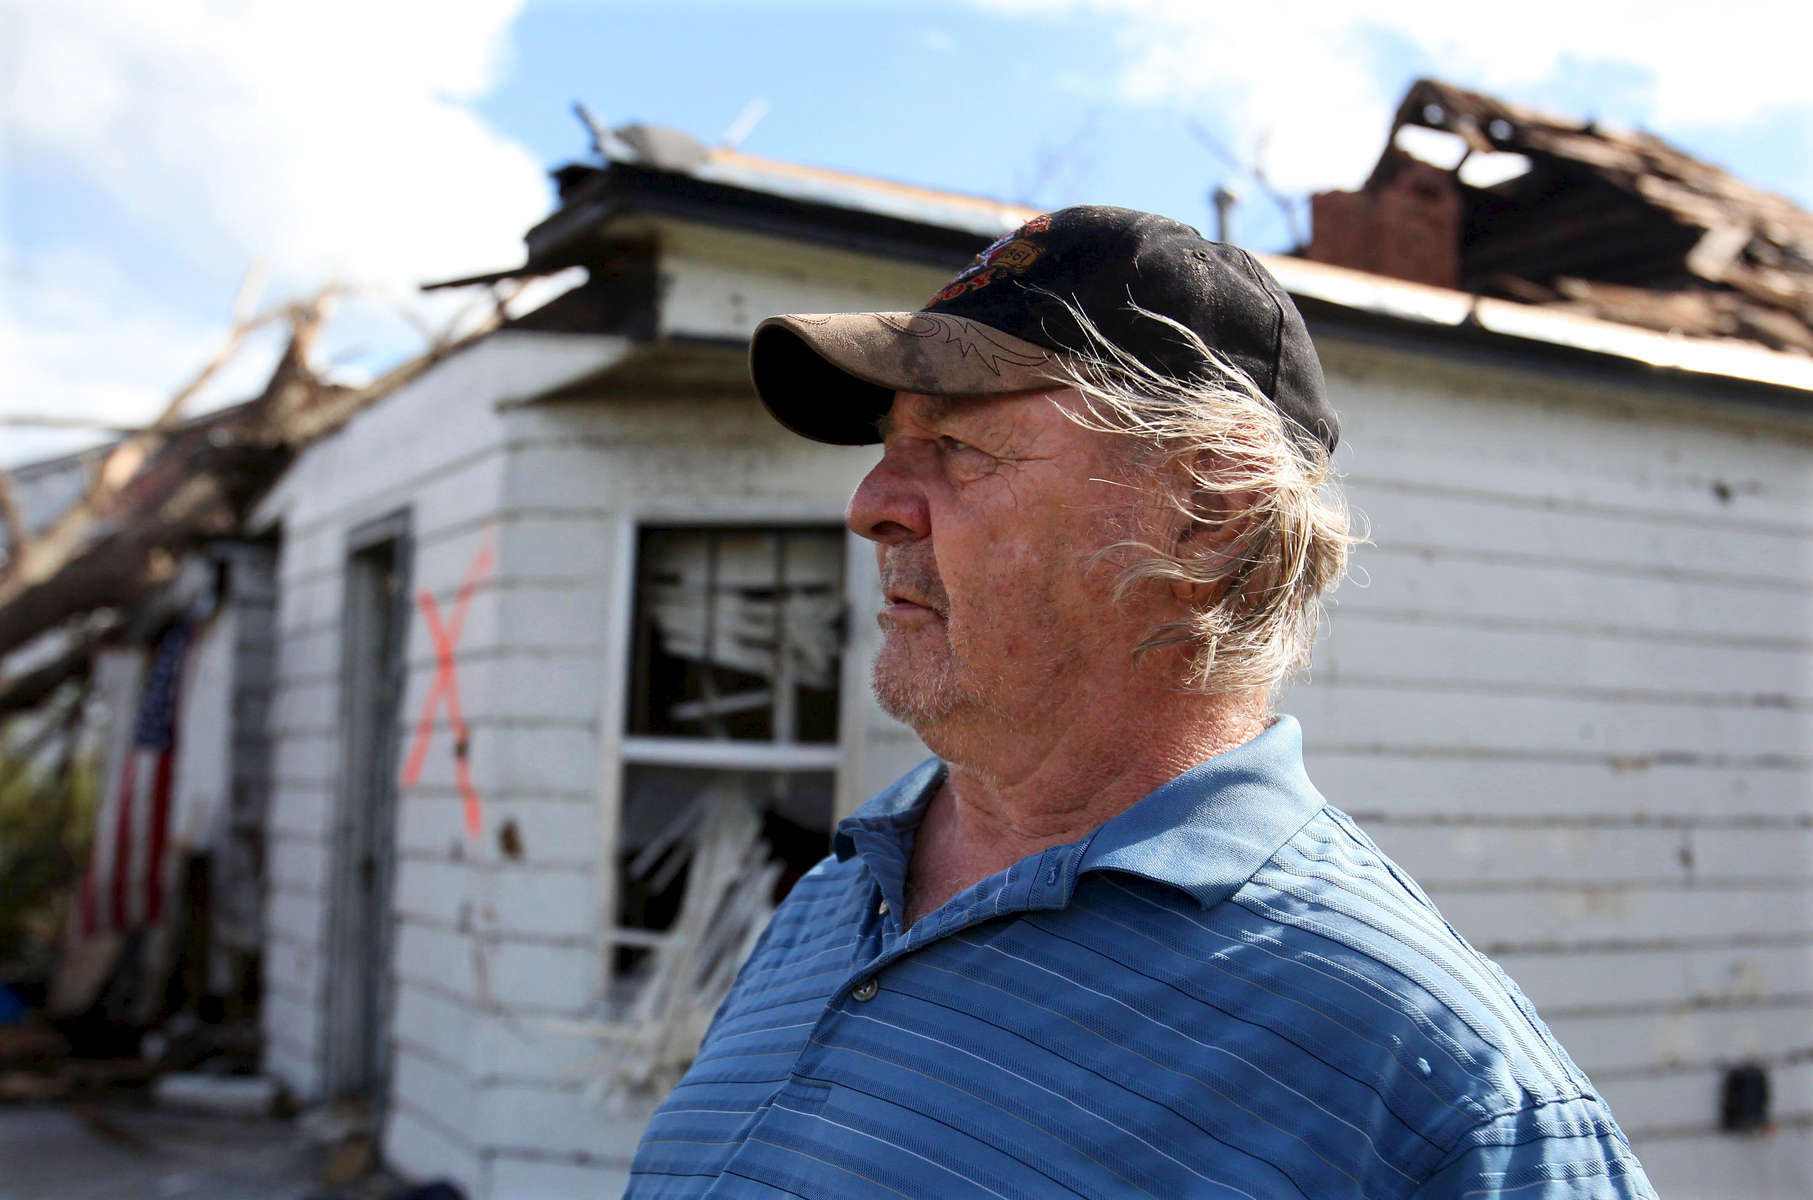 20110525 Joplin, Missouri (NAT)  Tornado aftermath in Joplin, MO. Resident Franklin Gregory, 66, who is living in a shelter at the University, surveys his neighborhood on Annie Baxter Street.  (dan story) Nicole Bengiveno / New York Times